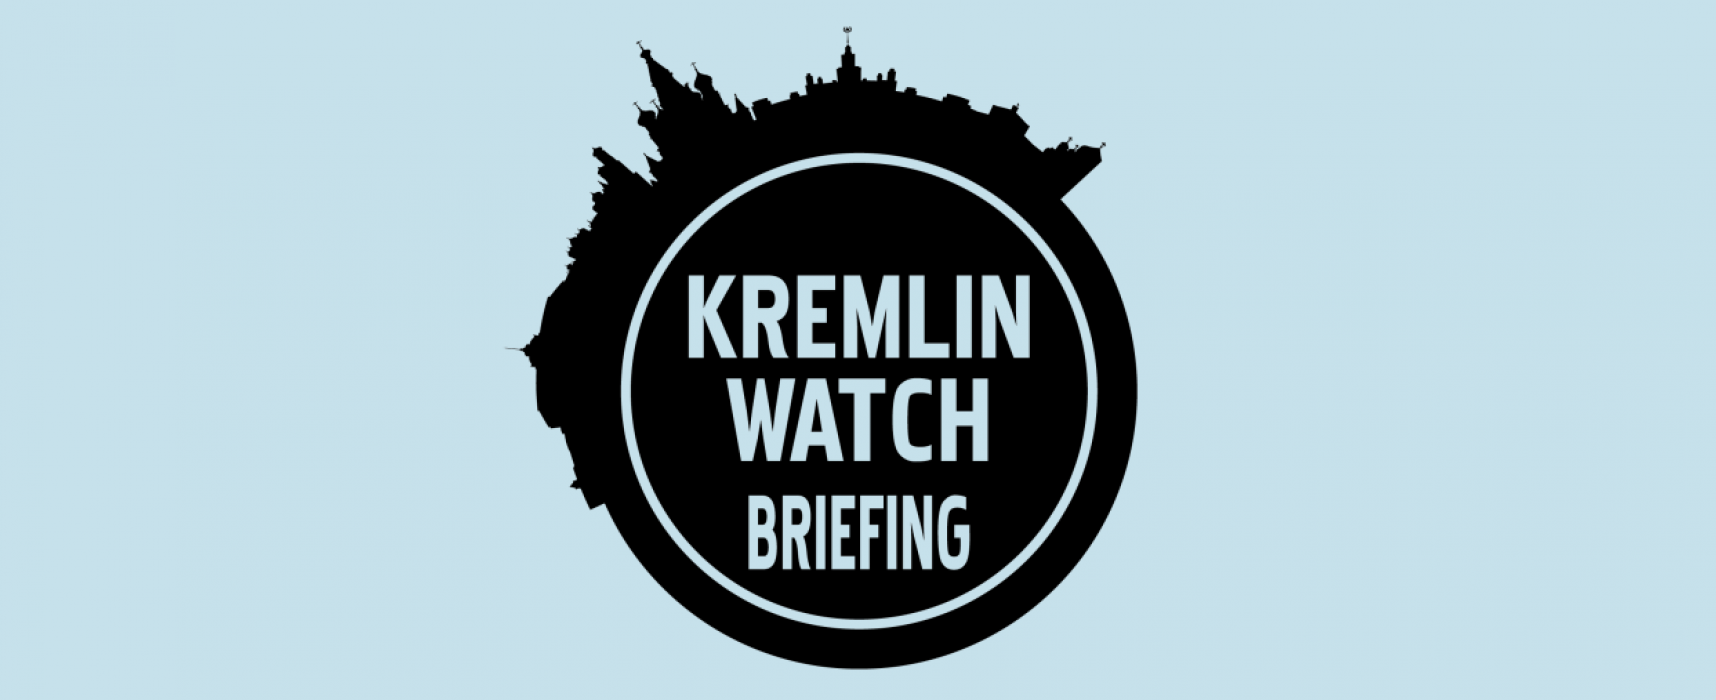 Kremlin Watch Briefing: New ranking of countermeasures by the EU28 to the Kremlin's Subversion Operations